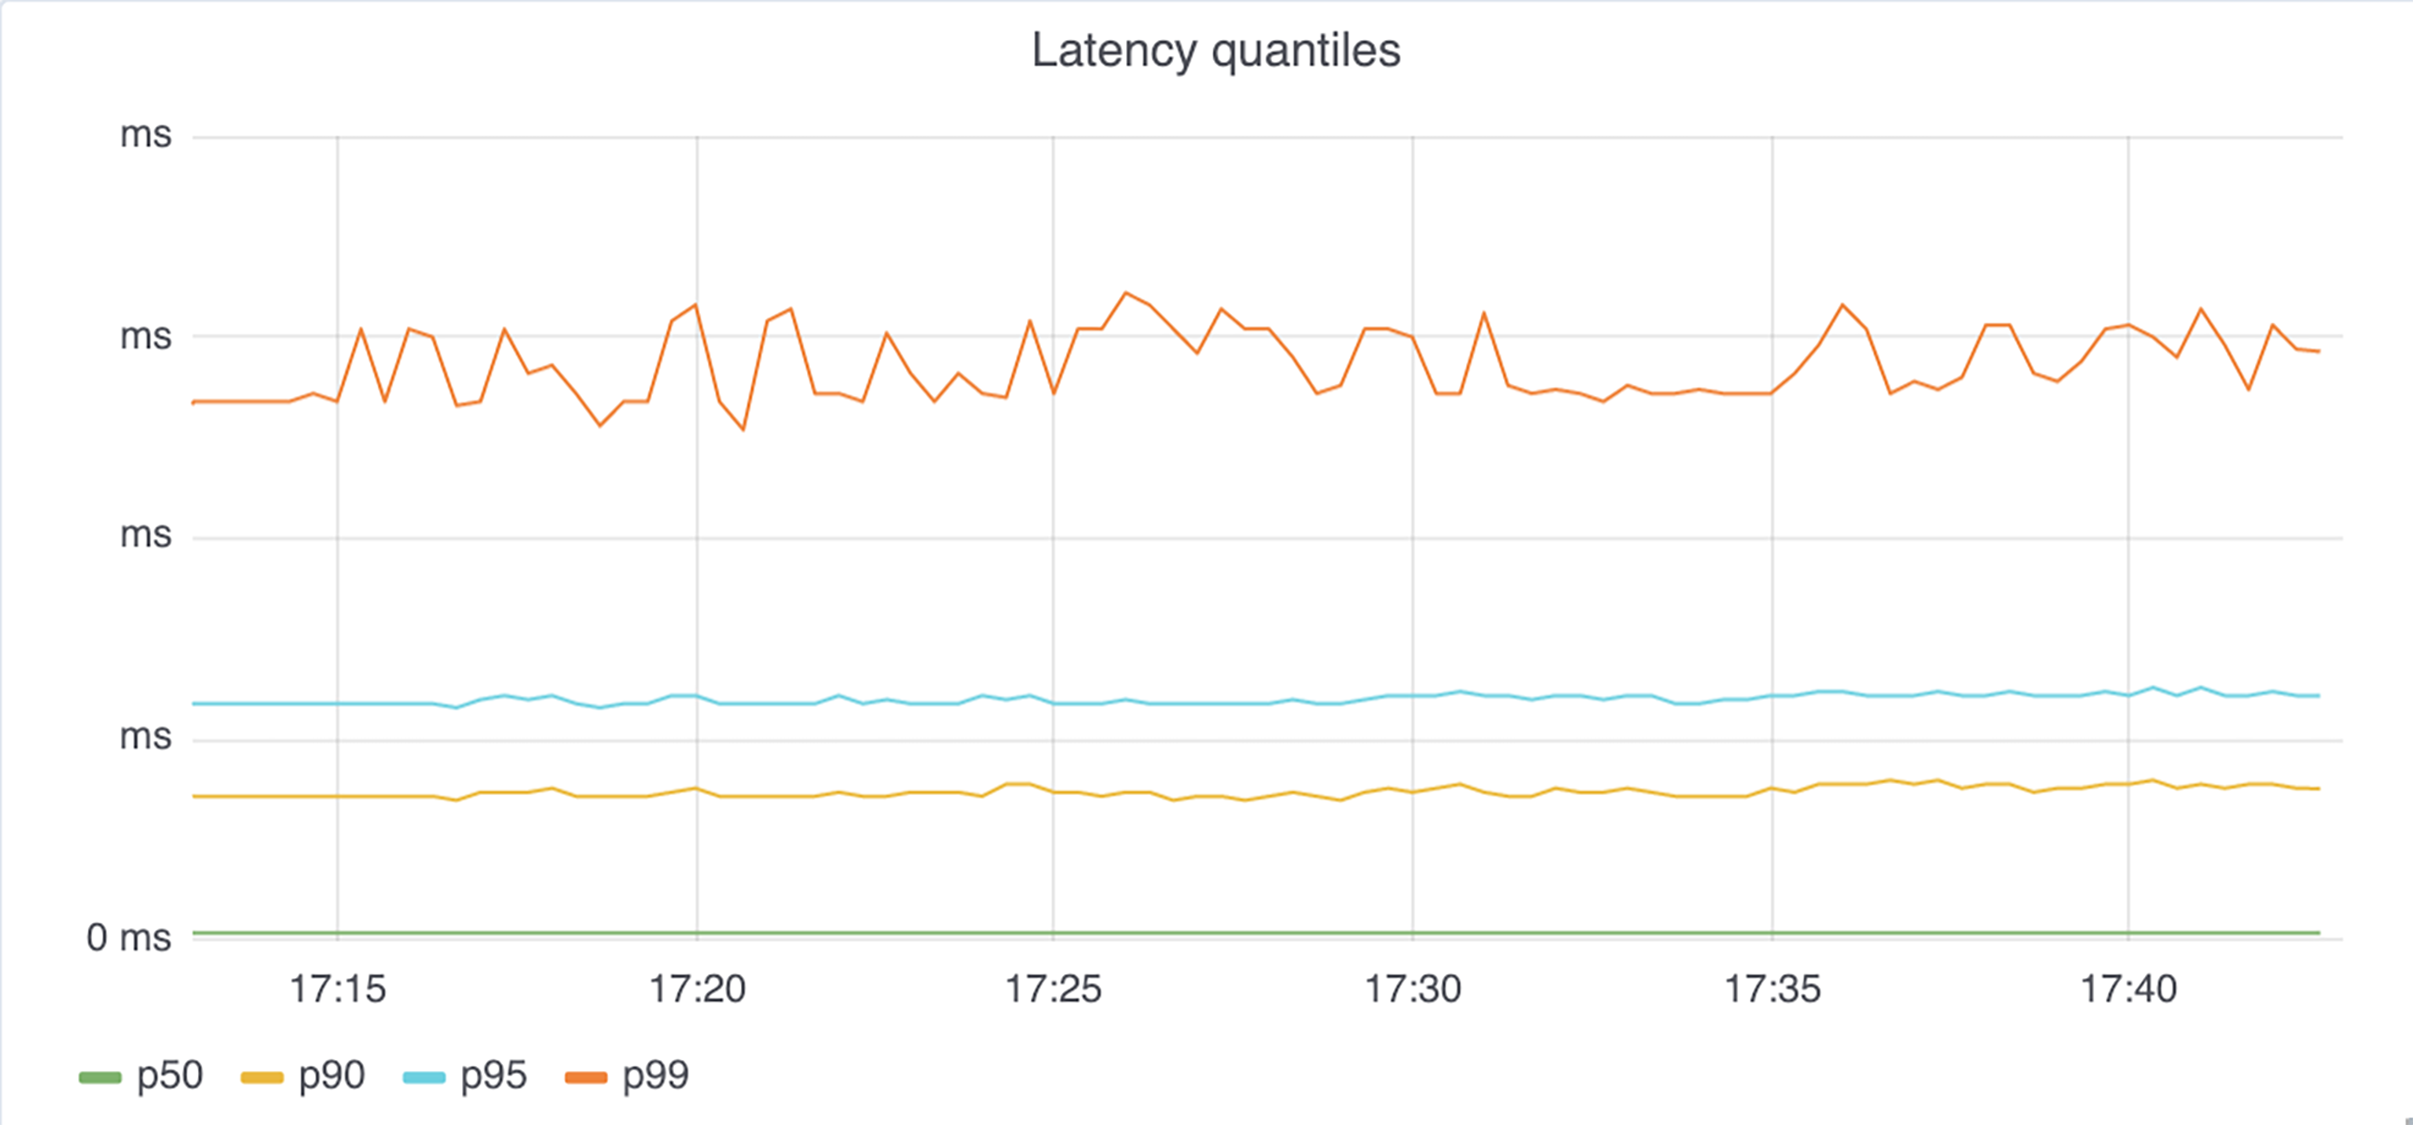 The second graph takes into account the overall latency of the requests by including connection setup time.